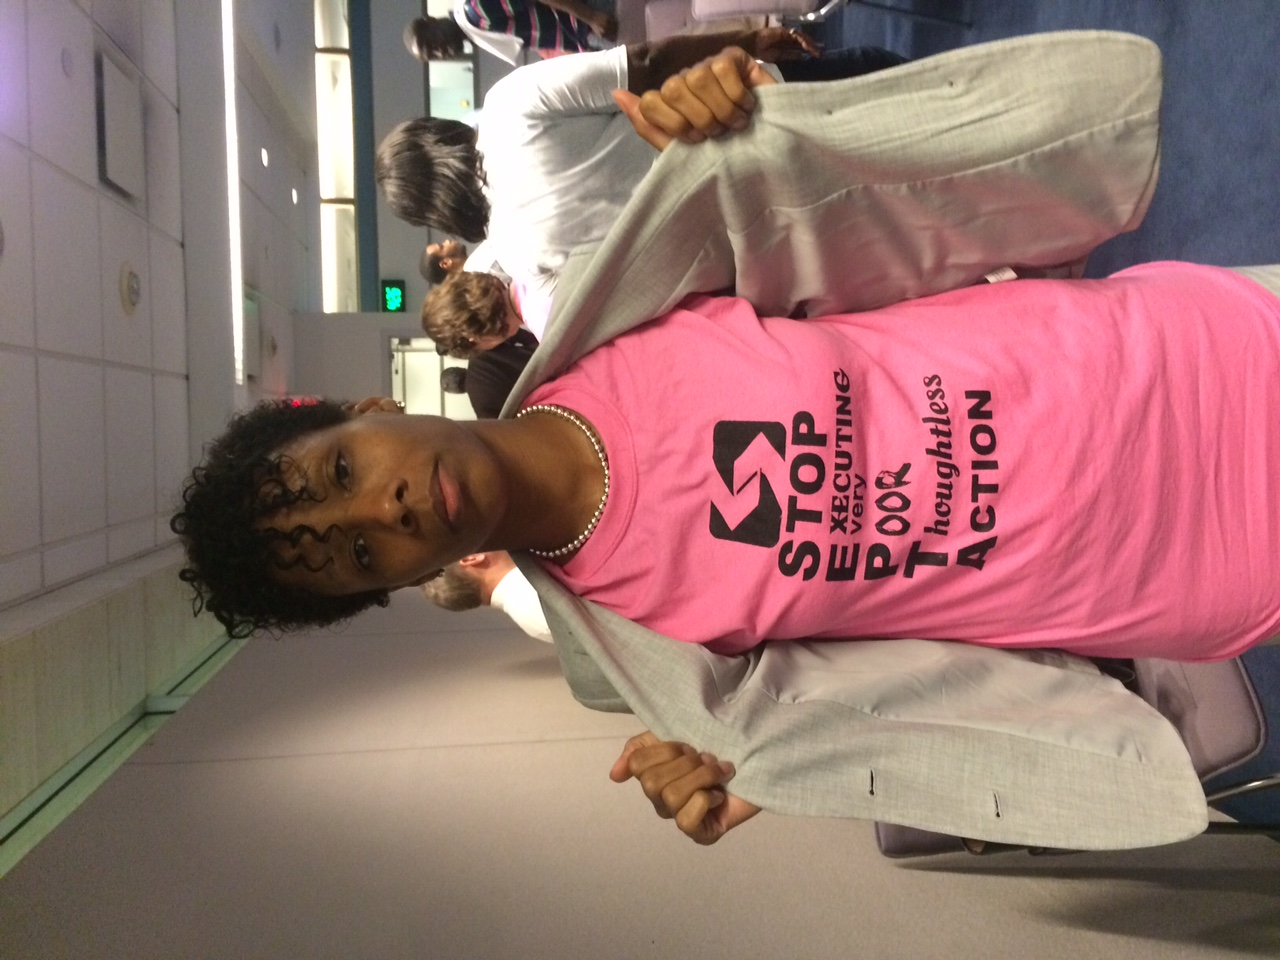 Kimberly Washington shows off SEPTA protest shirt